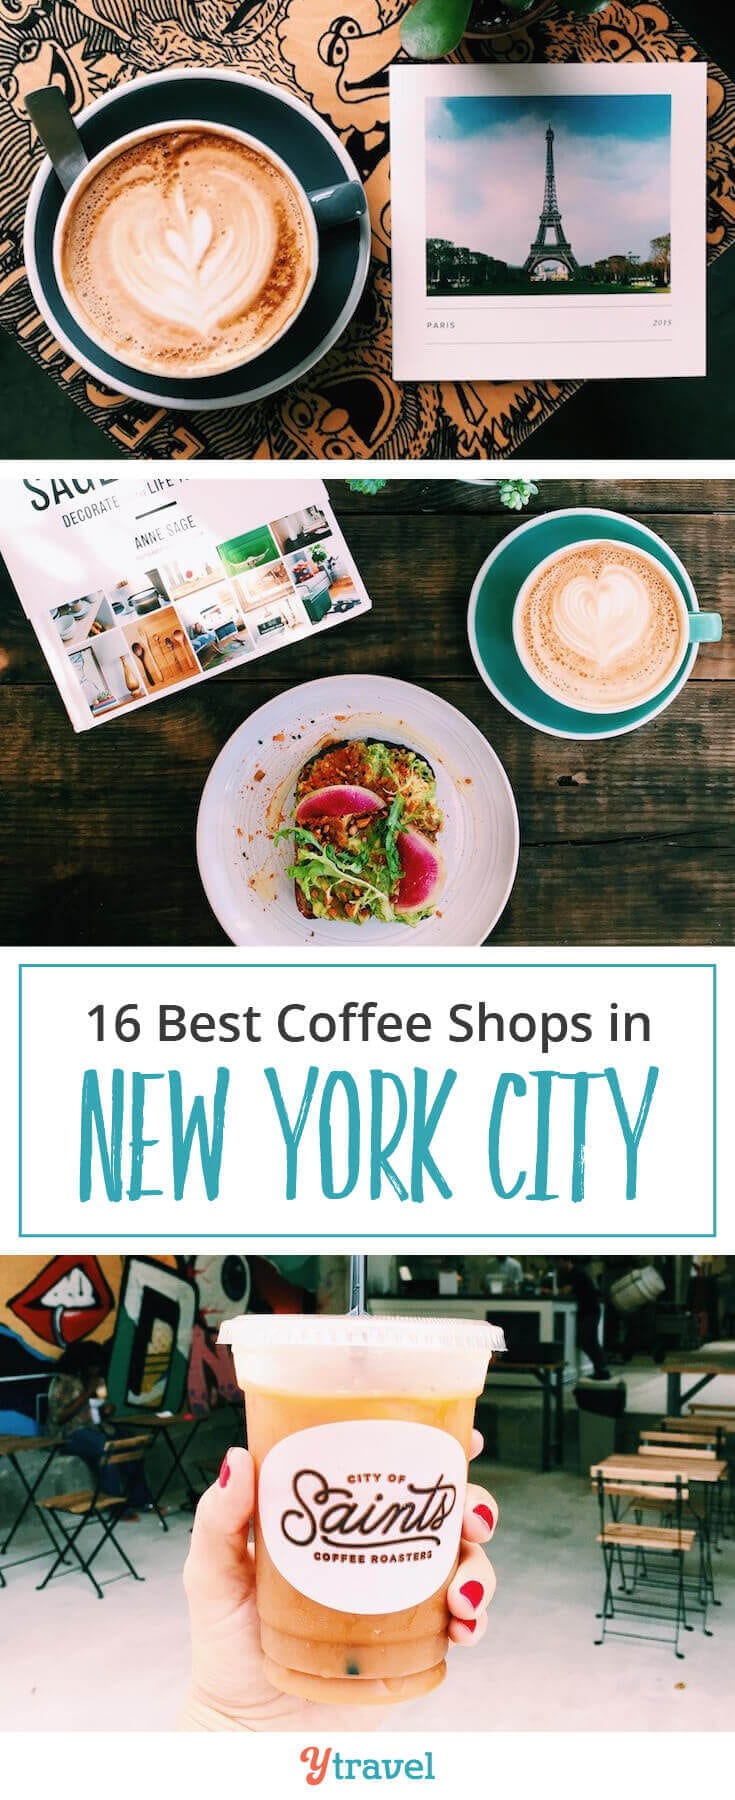 Best coffee shops in NYC. Want to drink coffee with the locals in New York City? Skip the chains and check out these 14 coffee shops in NYC that the locals love!